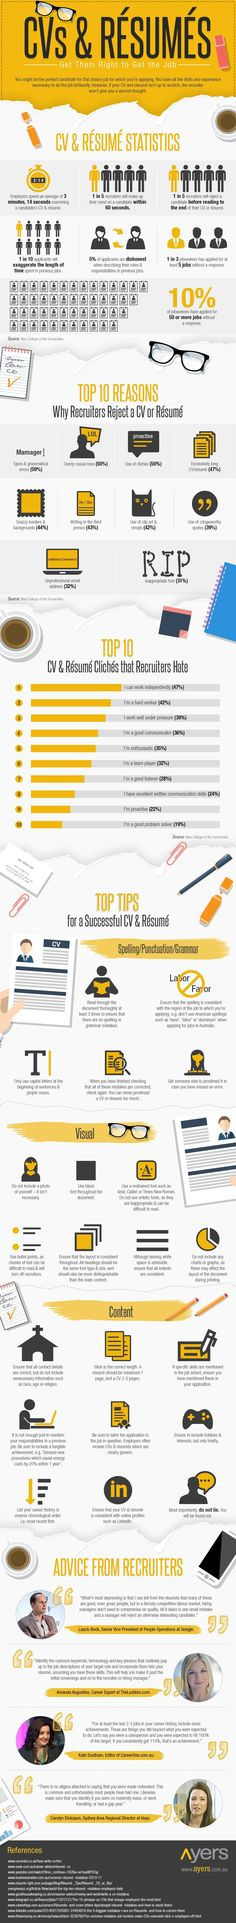 2013 study the new job hunt infographics Pinterest Helpful hints